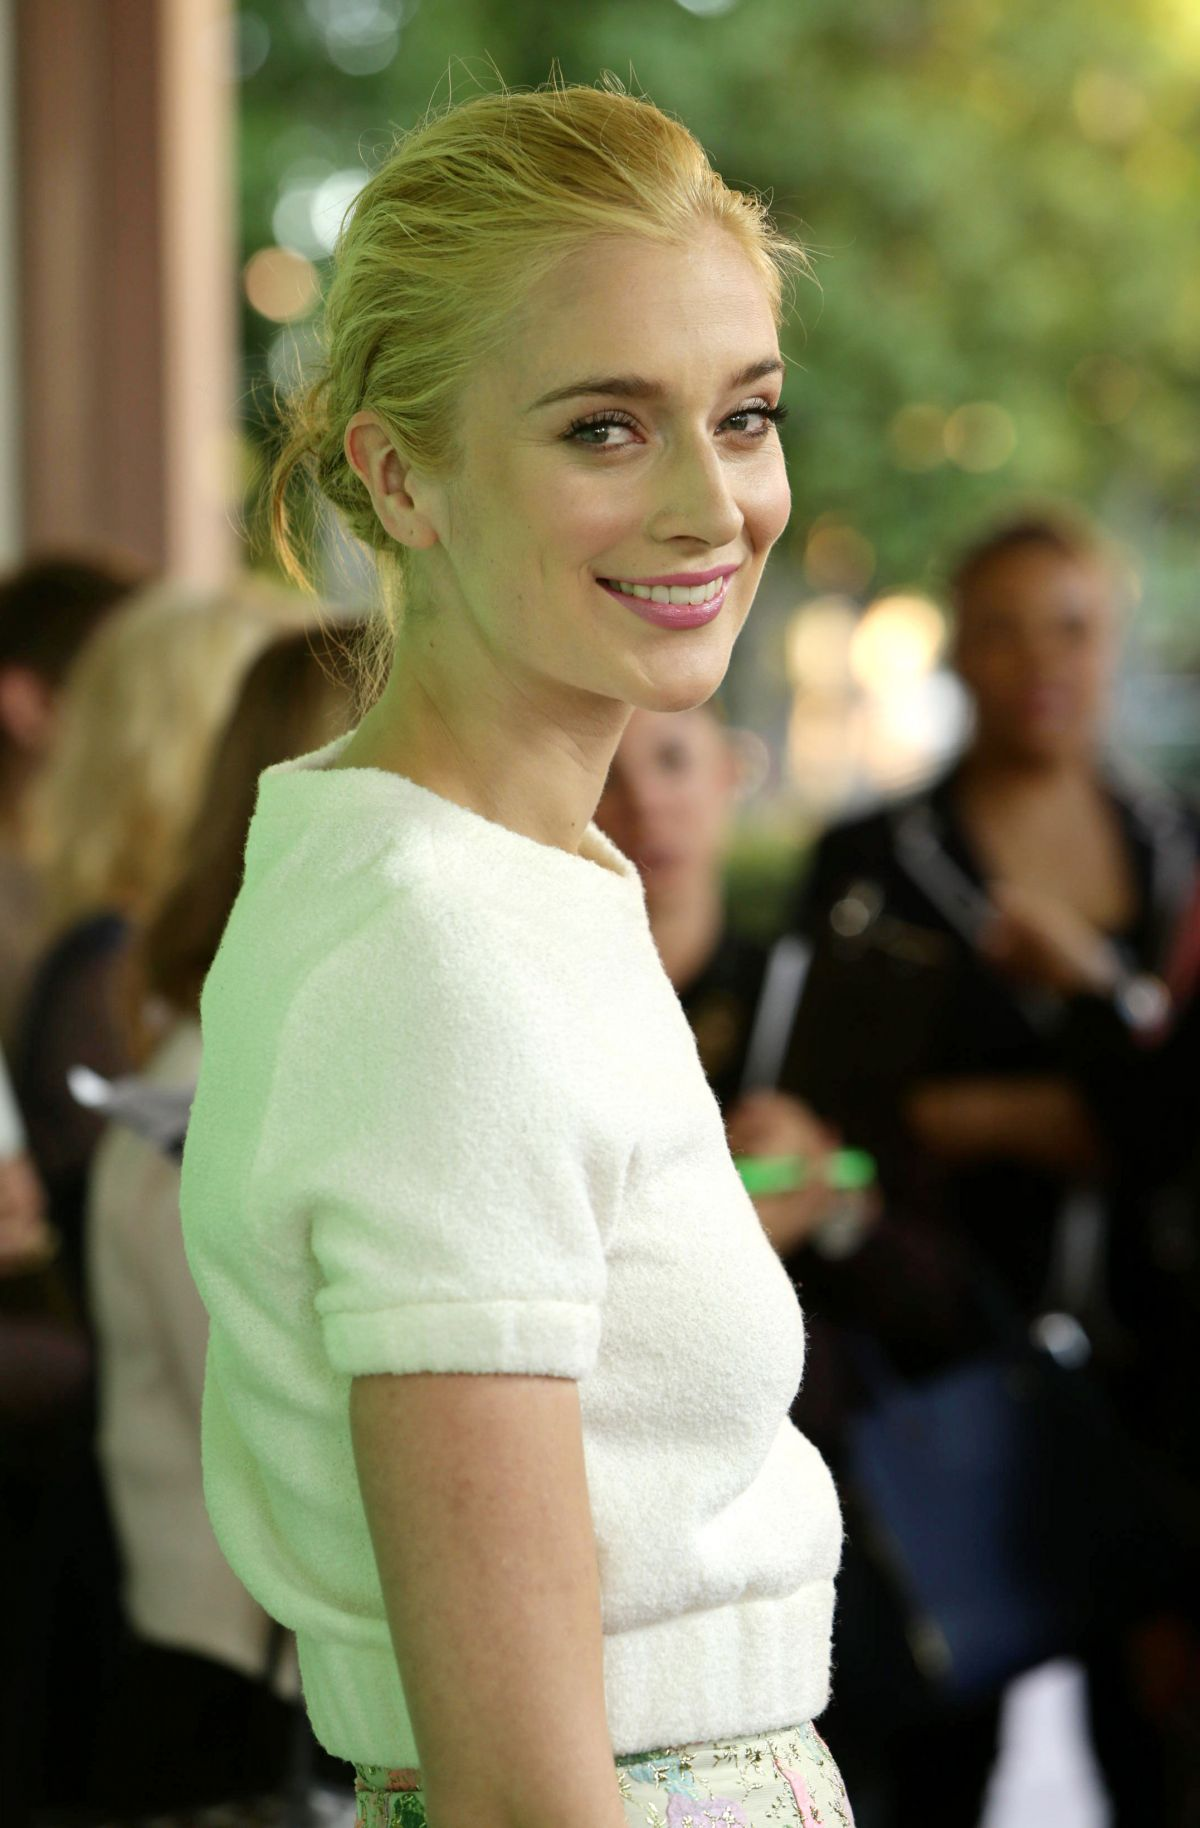 caitlin fitzgerald datingcaitlin fitzgerald husband, caitlin fitzgerald listal, caitlin fitzgerald foto, caitlin fitzgerald height and weight, caitlin fitzgerald imdb, caitlin fitzgerald twitter, caitlin fitzgerald, caitlin fitzgerald instagram, caitlin fitzgerald birthday, caitlin fitzgerald interview, caitlin fitzgerald boyfriend, caitlin fitzgerald bio, caitlin fitzgerald dating, caitlin fitzgerald nudography, caitlin fitzgerald pictures